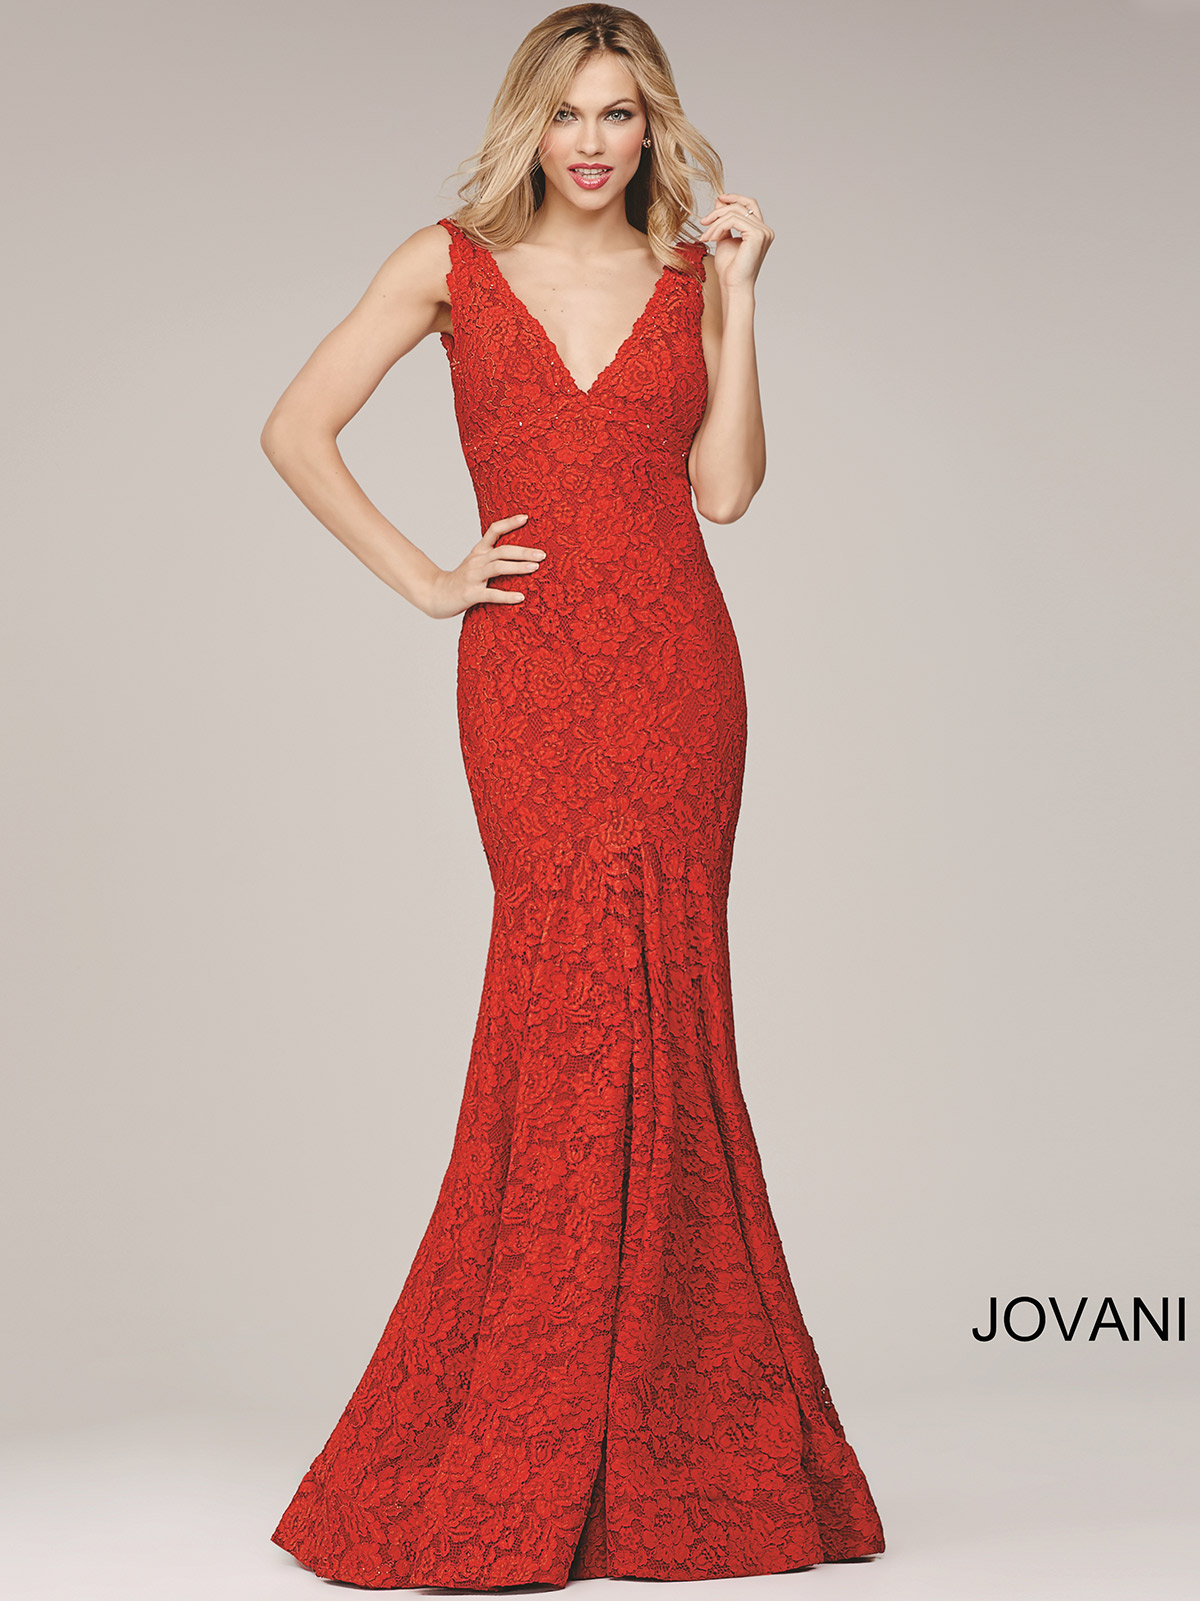 Jovani 33050 Lace Mermaid Prom Dress|DressProm.net